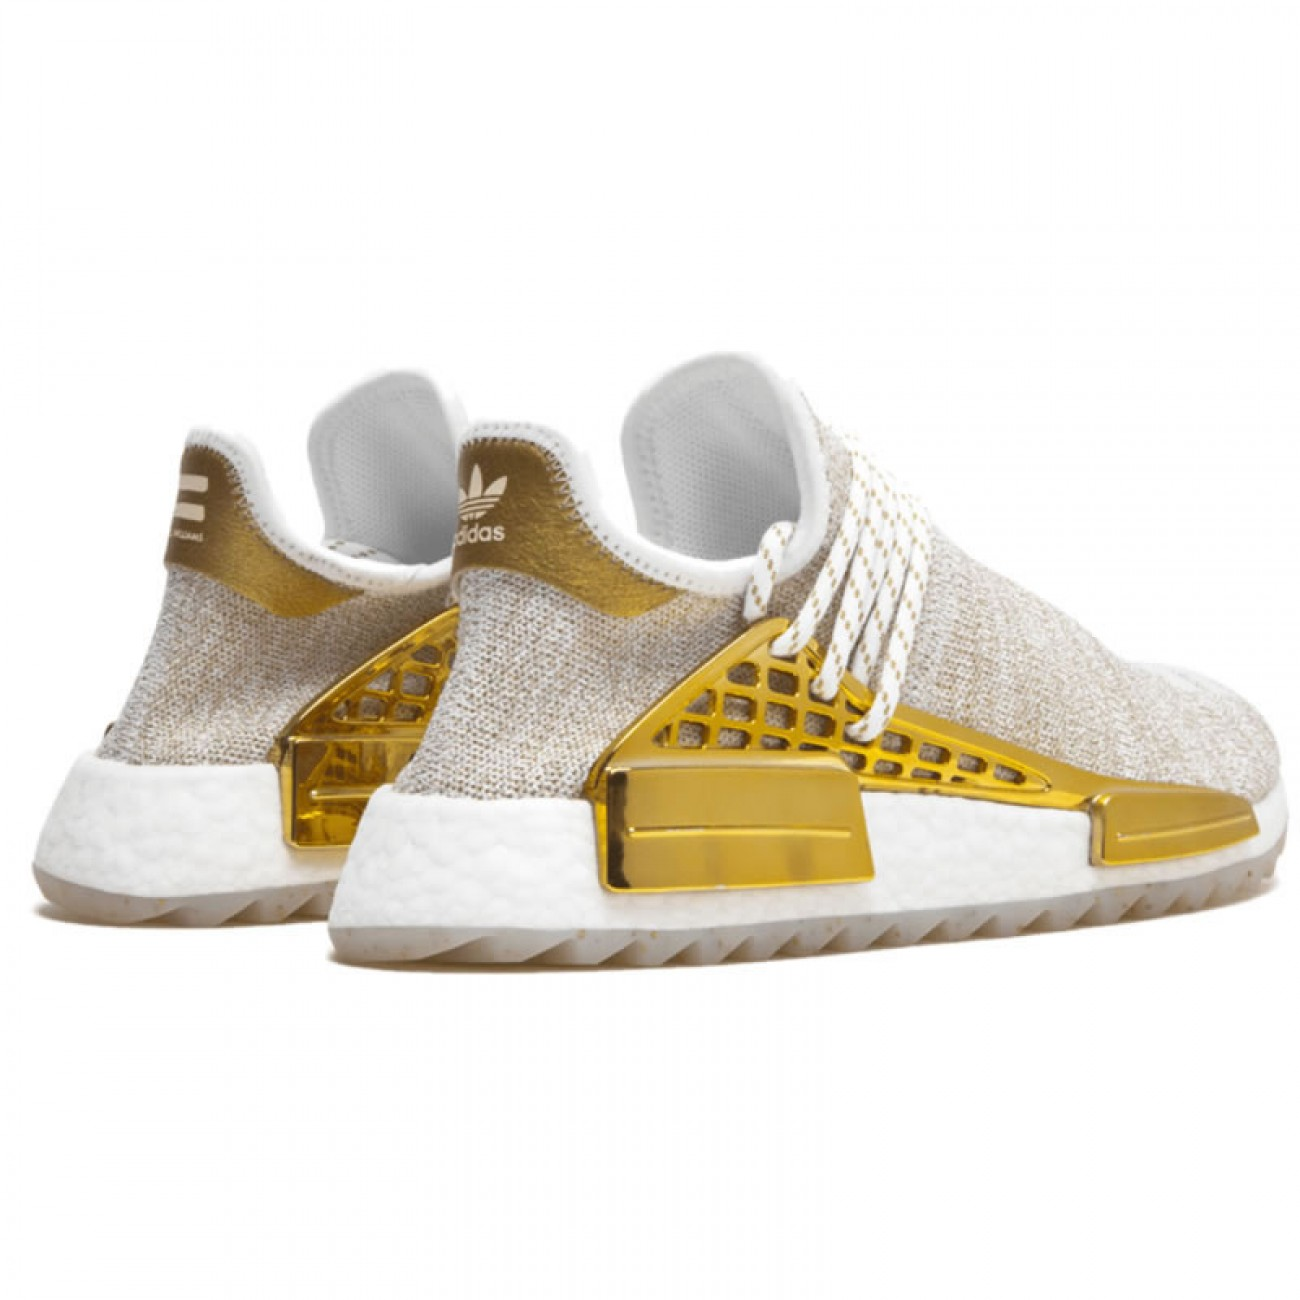 8854143954481 adidas Pharrell NMD Hu China Pack Happy Gold (Friends and Family) - 3